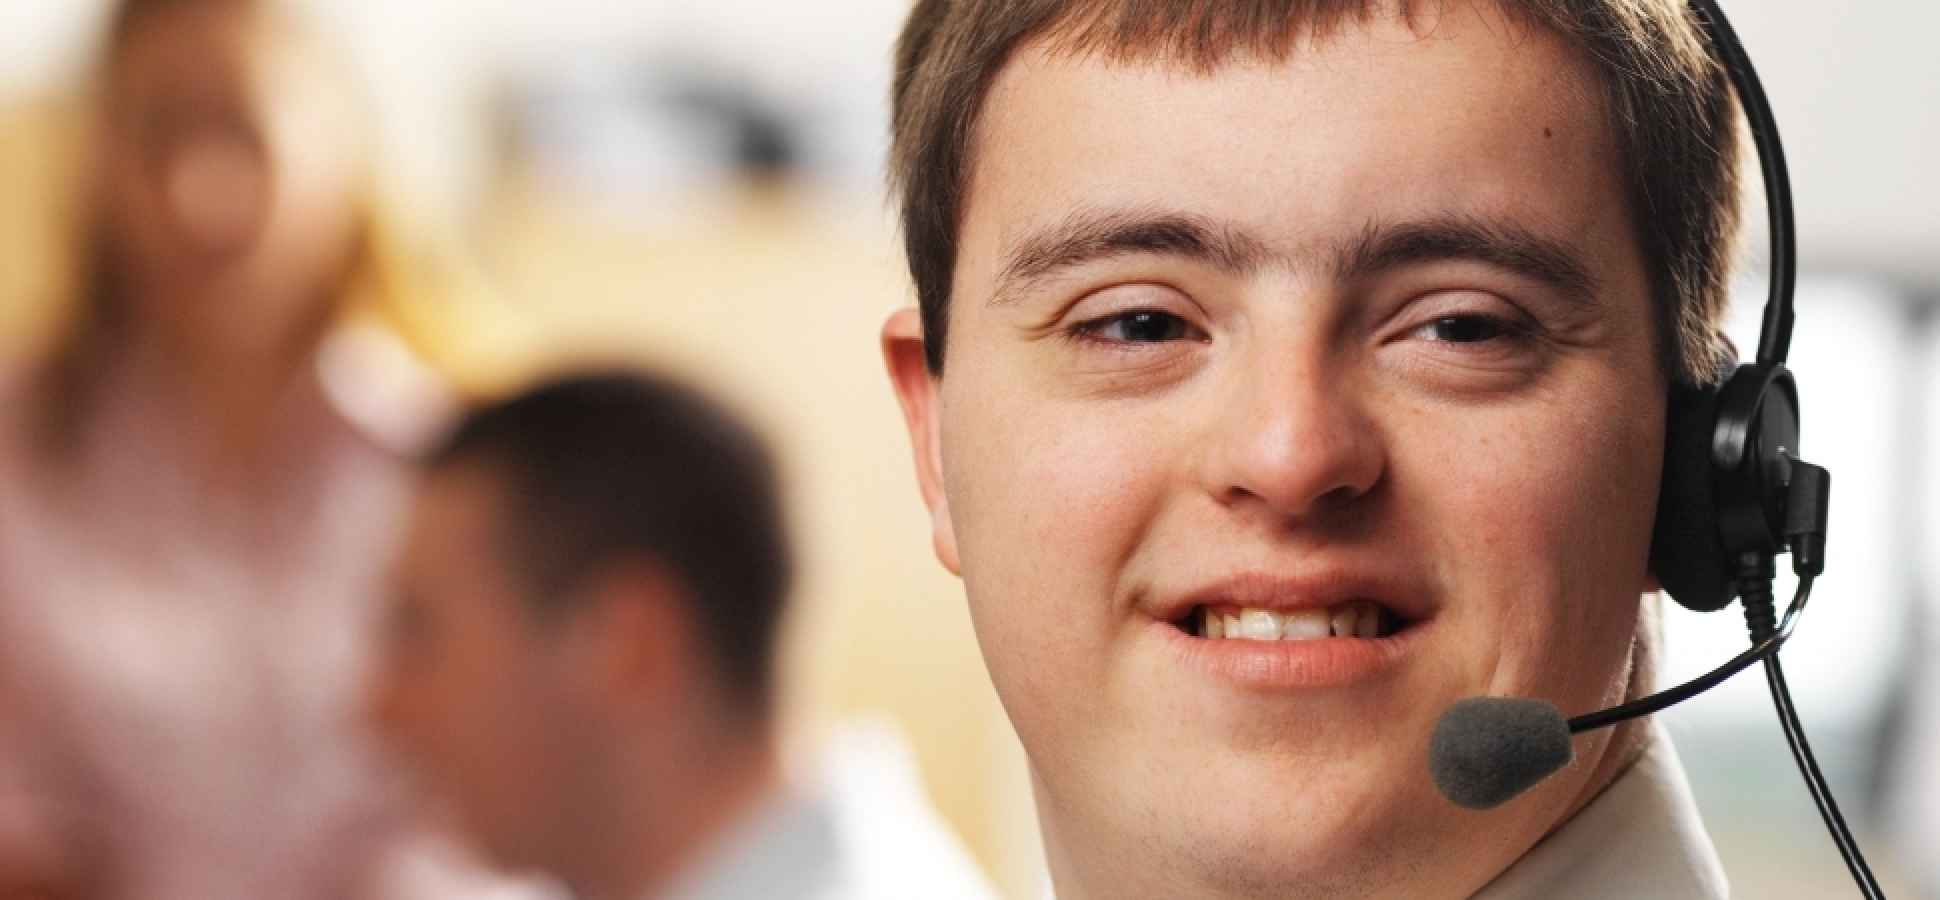 11 Great Reasons to Hire Developmentally Disabled Employees